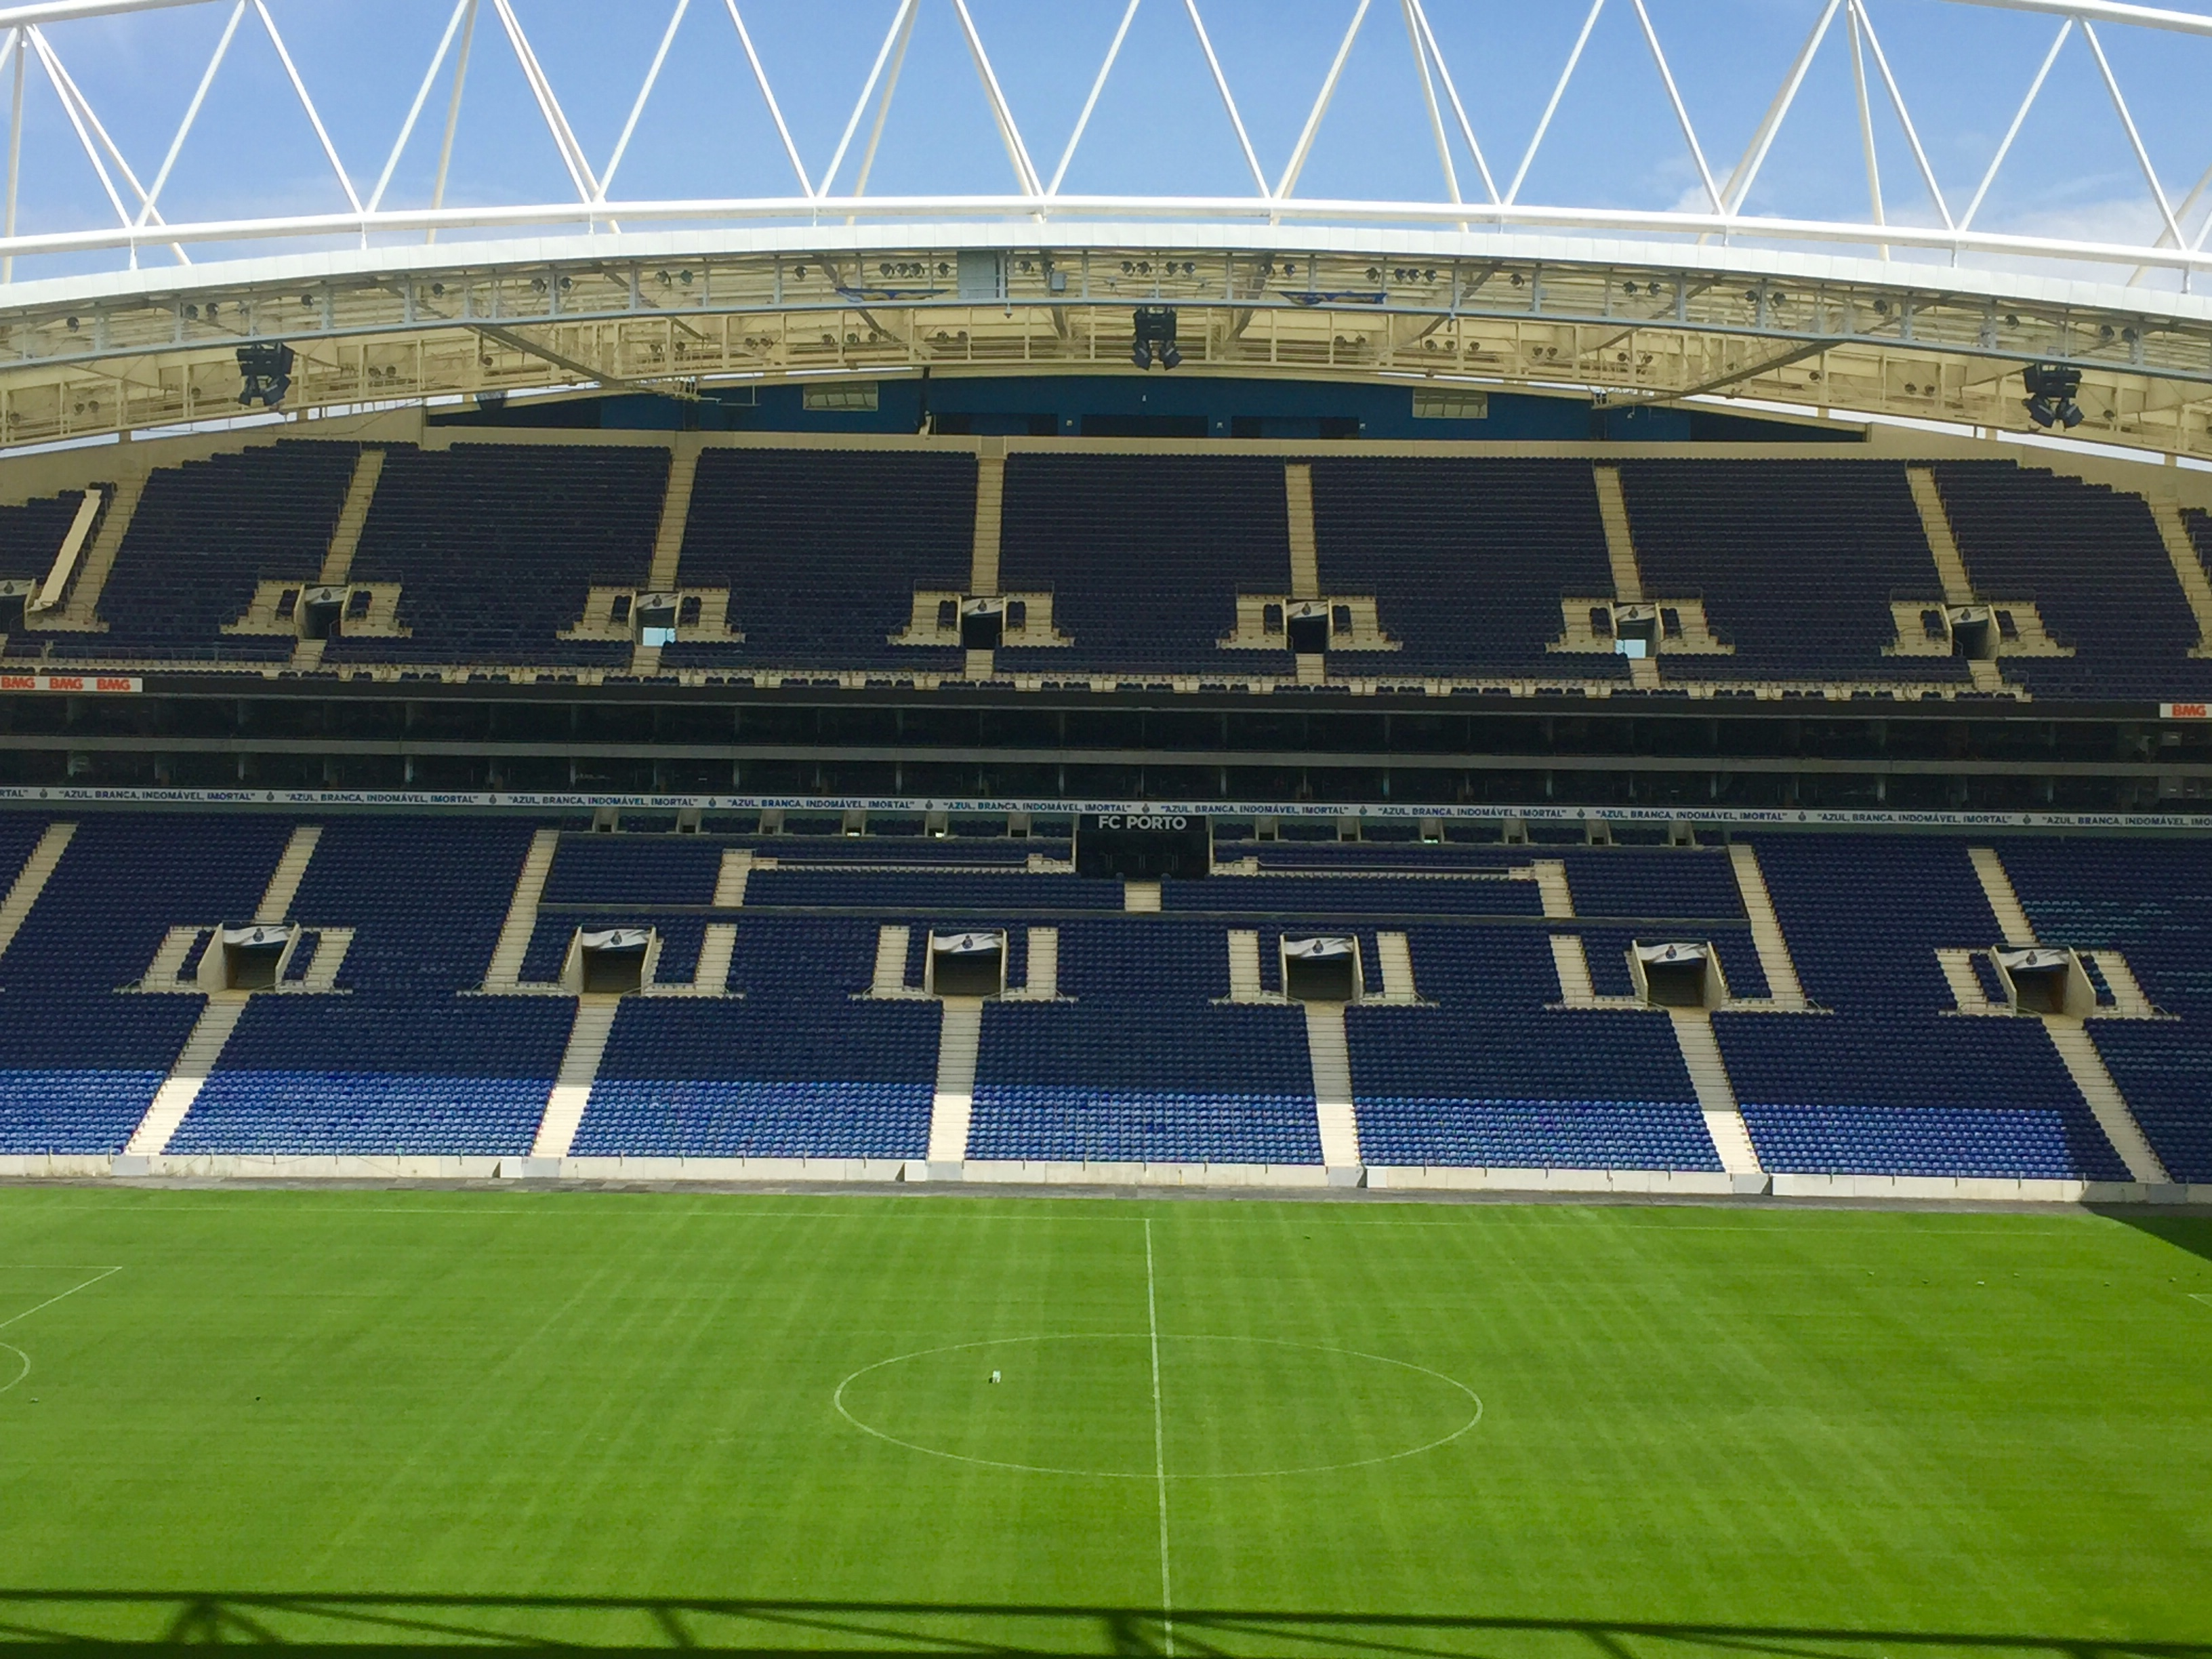 Estádio do Dragão in Porto